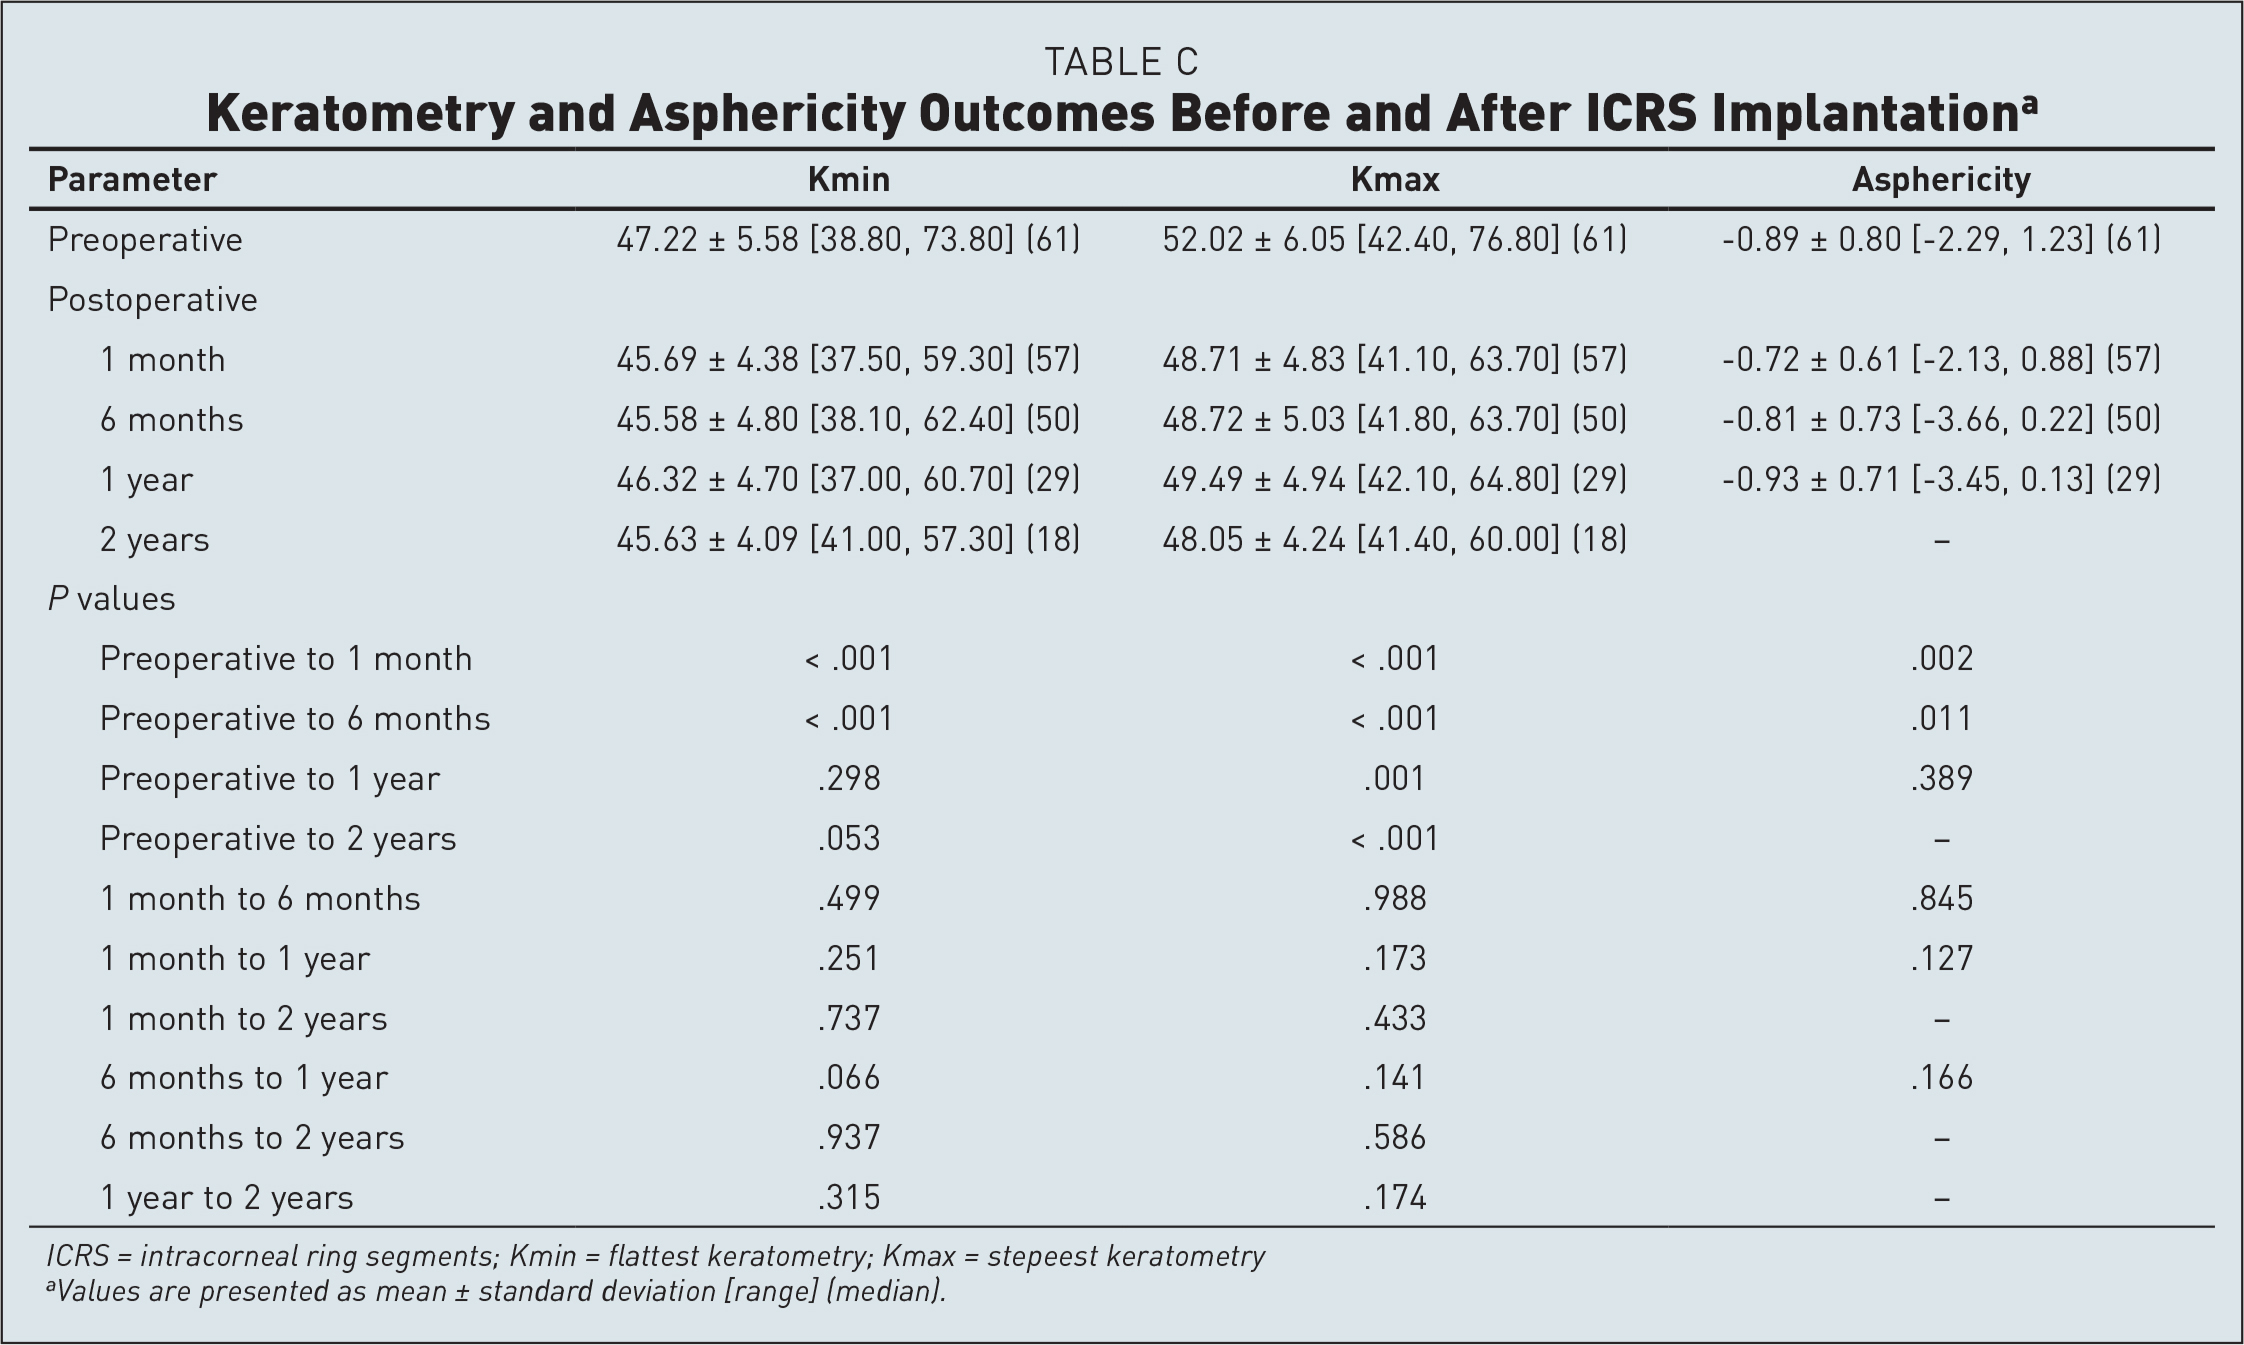 Keratometry and Asphericity Outcomes Before and After ICRS Implantationa